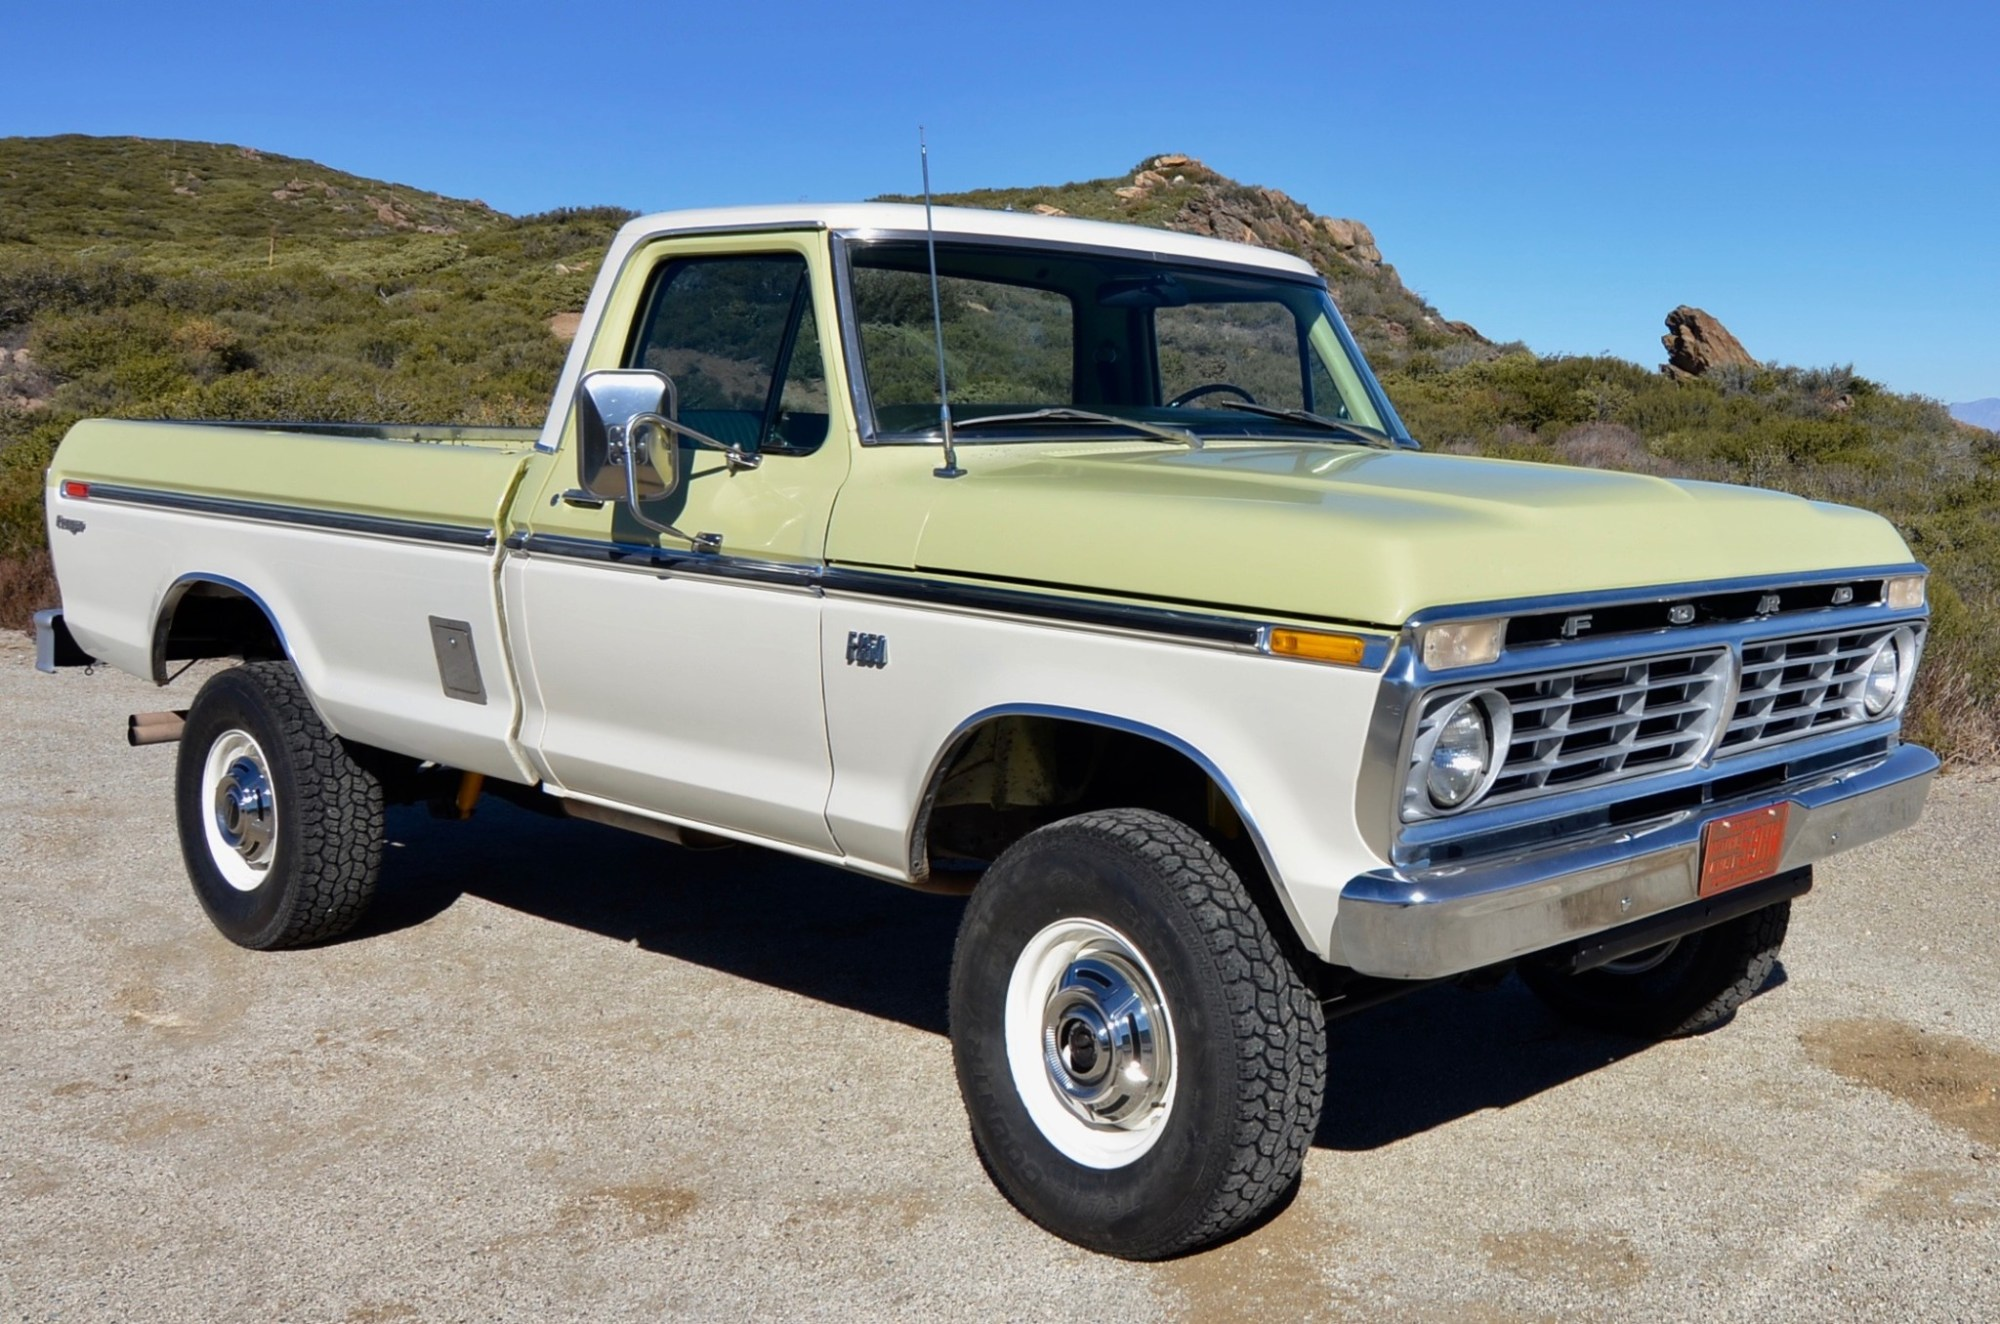 hight resolution of no reserve 1975 ford f 250 4x4 for sale on bat auctions sold for 20 500 on december 31 2018 lot 15 264 bring a trailer